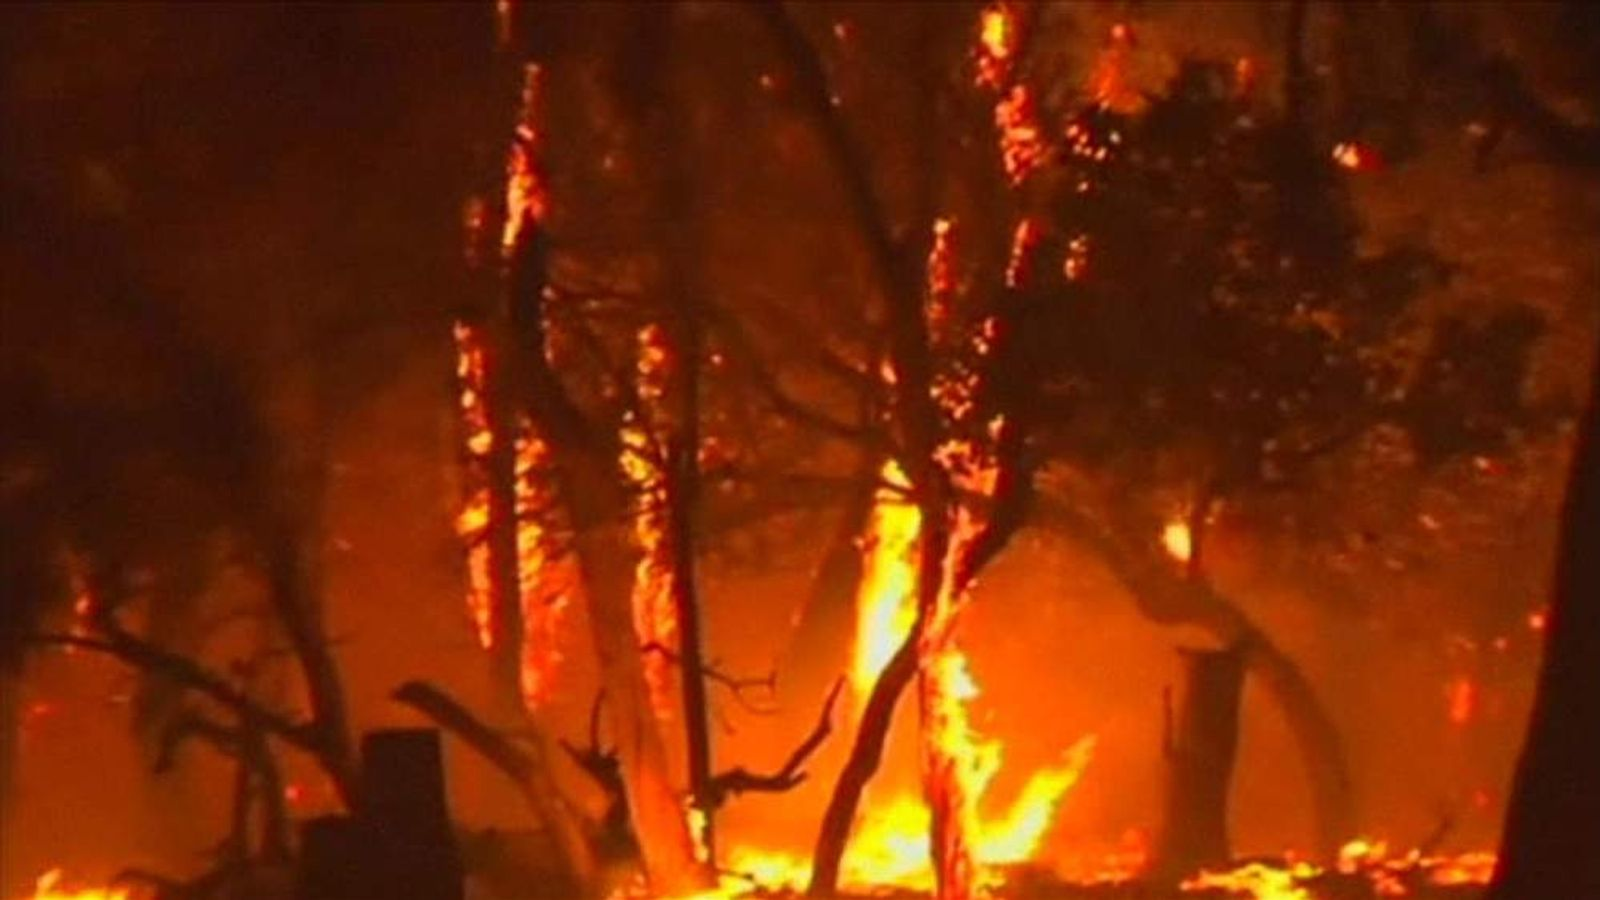 The small community of Yarloop has been devastated by the wildfires